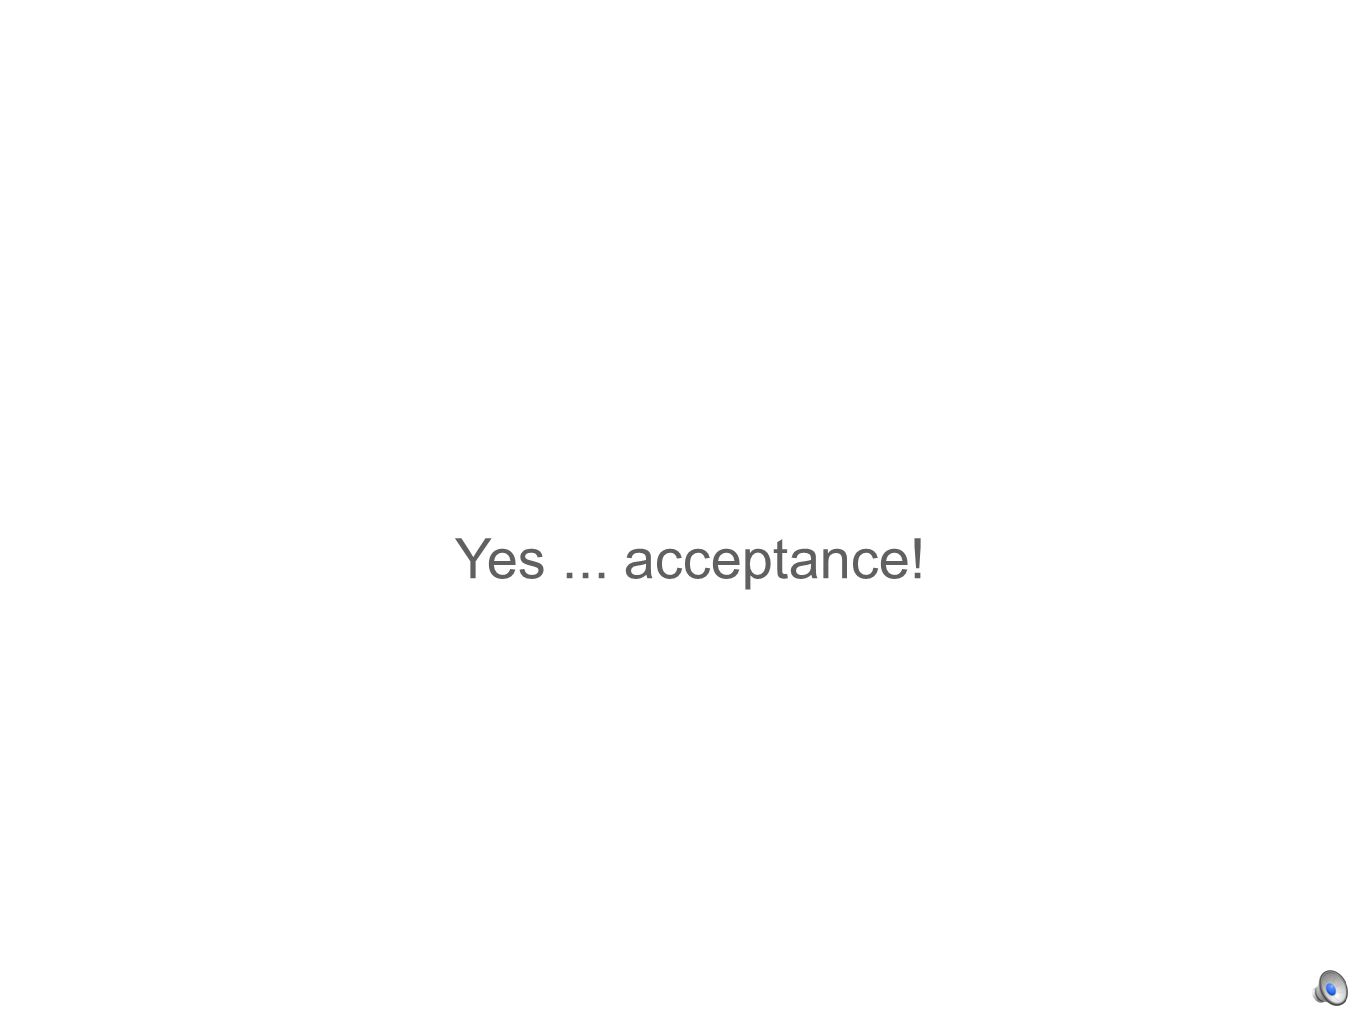 Yes... acceptance!